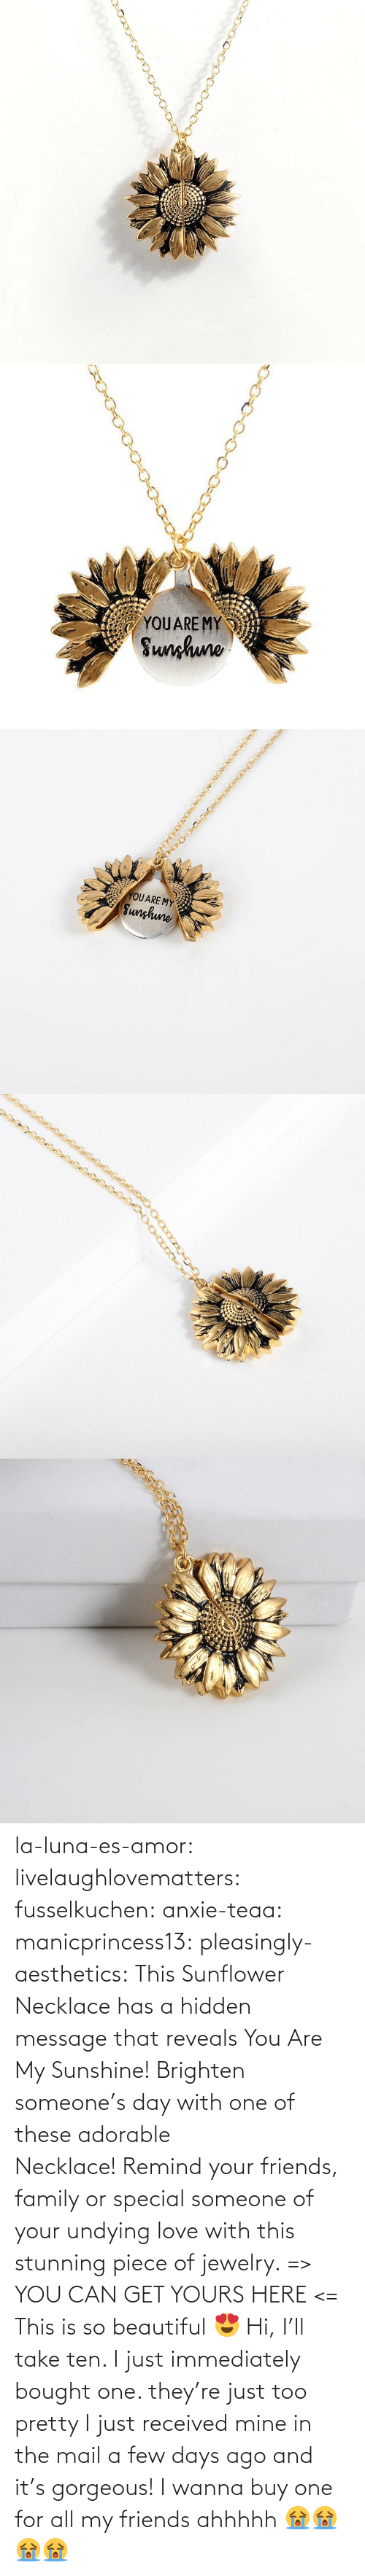 Hidden Message: YOUARE MY  Sunhuno   YOUARE MY  Sunghune la-luna-es-amor: livelaughlovematters:  fusselkuchen:  anxie-teaa:   manicprincess13:   pleasingly-aesthetics:  This Sunflower Necklace has a hidden message that reveals You Are My Sunshine! Brighten someone's day with one of these adorable Necklace! Remind your friends, family or special someone of your undying love with this stunning piece of jewelry. => YOU CAN GET YOURS HERE <=   This is so beautiful 😍    Hi, I'll take ten.    I just immediately bought one. they're just too pretty   I just received mine in the mail a few days ago and it's gorgeous!   I wanna buy one for all my friends ahhhhh 😭😭😭😭